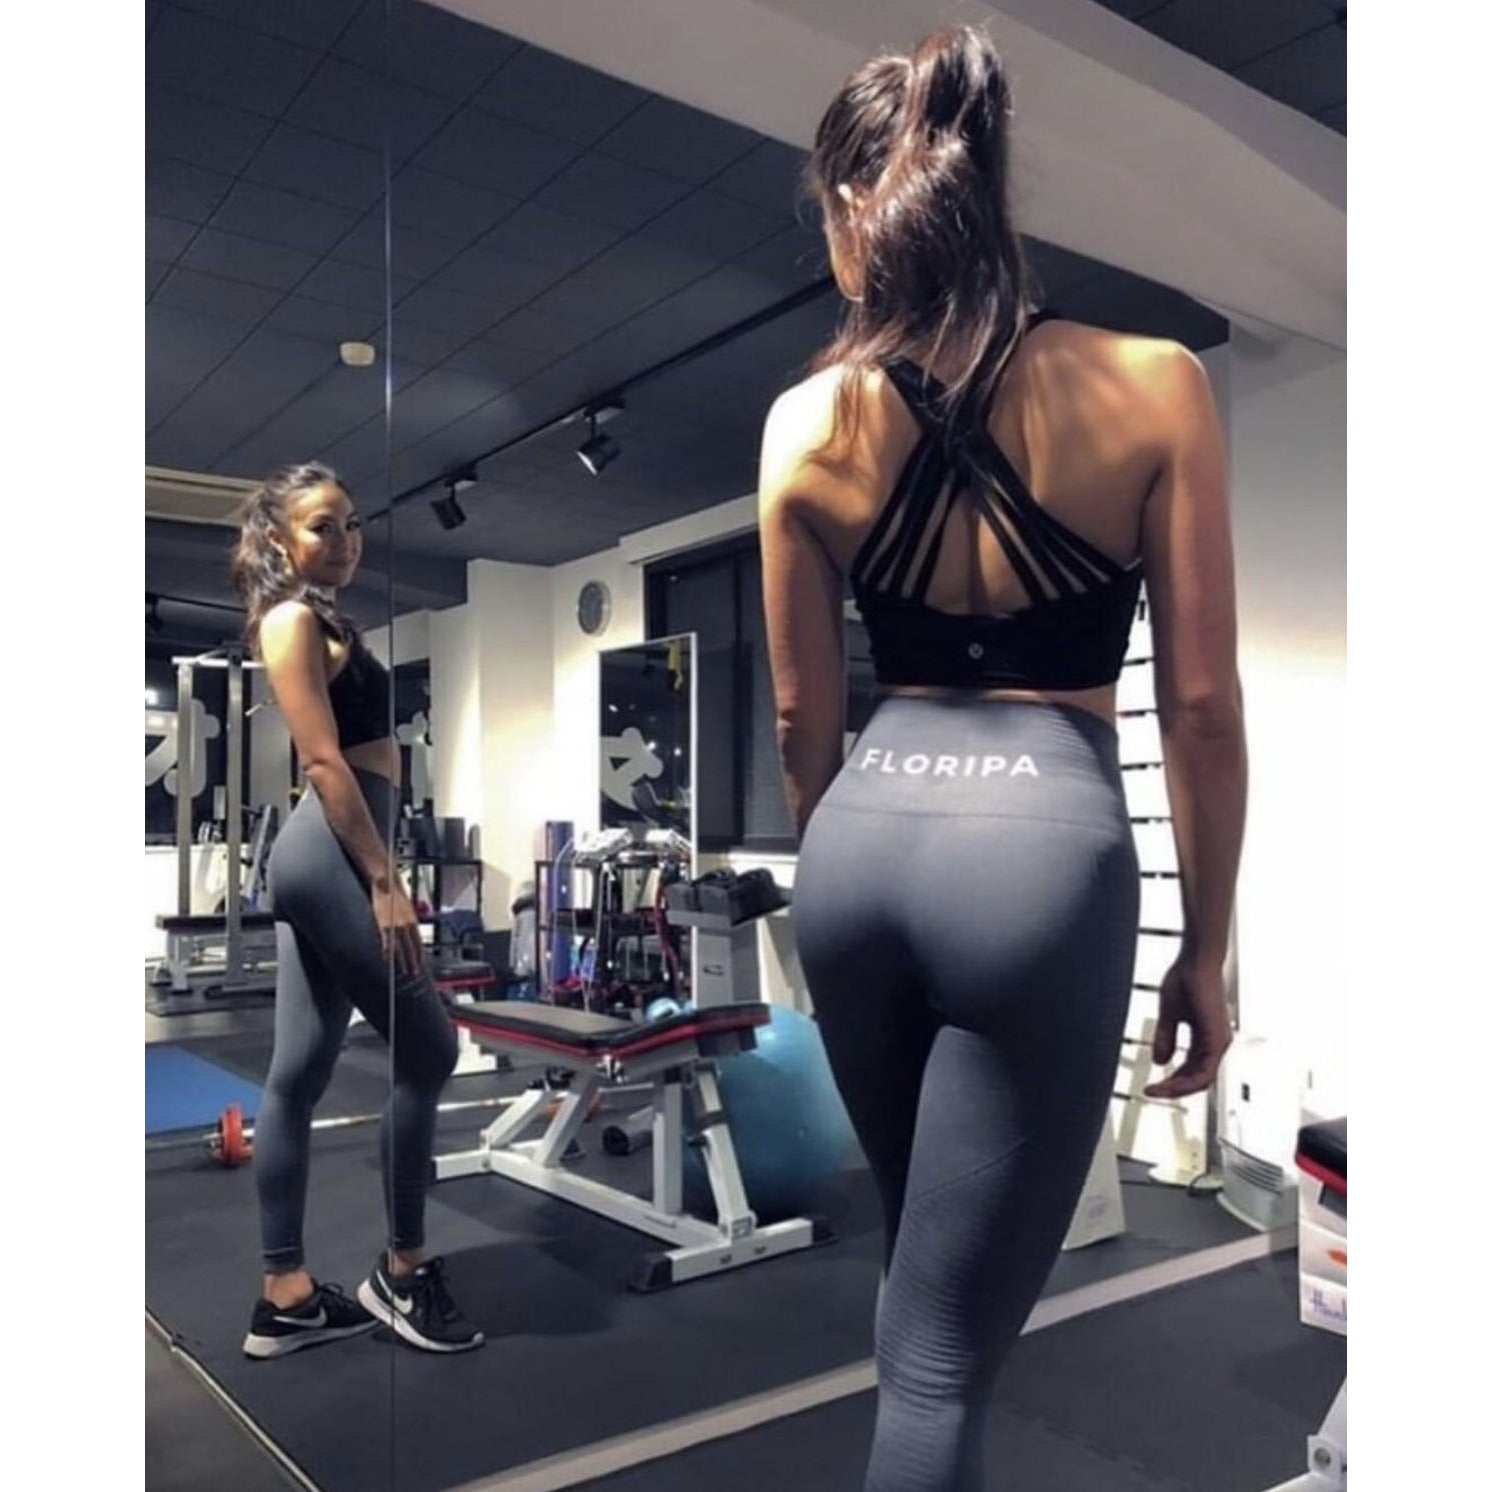 Grey High Waisted Gym Leggings - floripawear